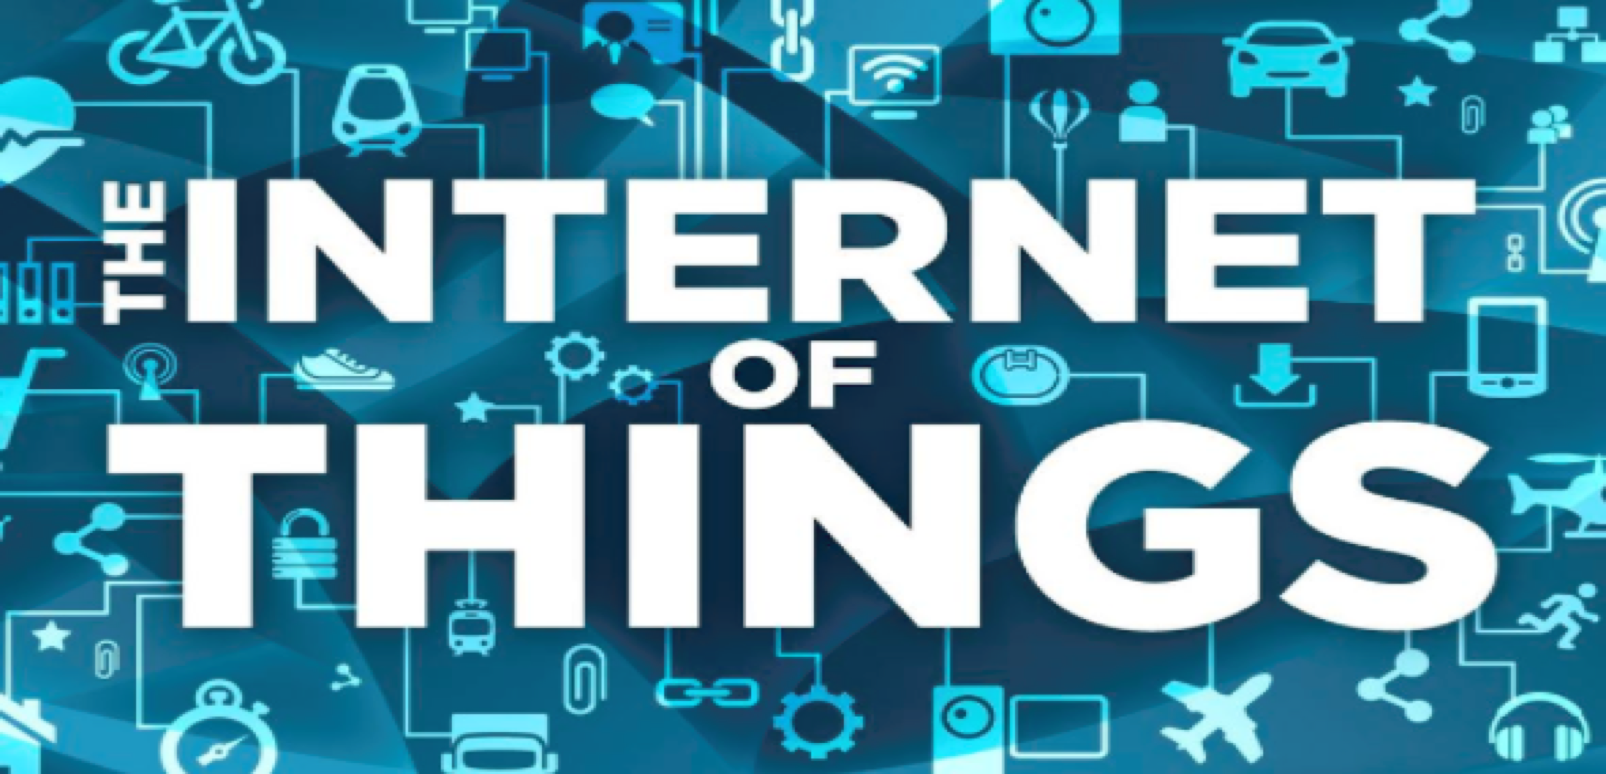 Experimental study on developing Internet of Things system over the